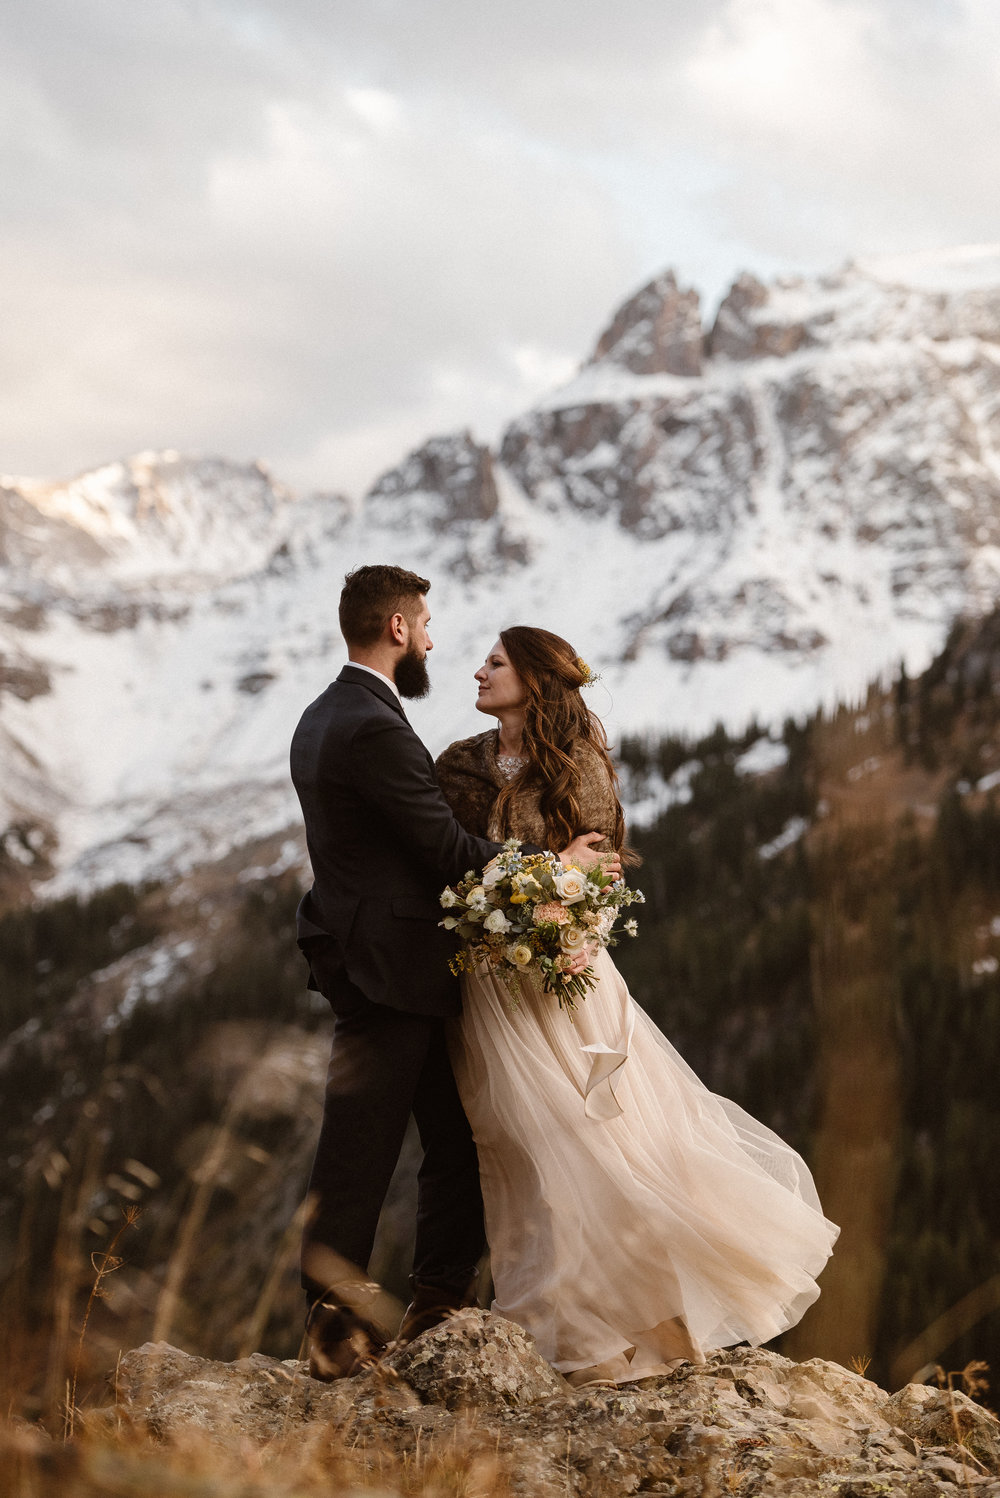 Adventure-wedding-adventure-elopement-Maddie-mae-Maddie-mae-photography-Maddie-mae-photographer-Intimate-wedding-photographer-Intimate-wedding-photography-elopement-photographer-traveling-wedding-photographer-traveling-elopement-photographer-Adventure-elopement-photographer-Adventure-wedding-photographer-Destination-wedding-Destination-elopement-Destination-wedding-photography-Destination-wedding-photographer-Maddie-MaeIntimate-Wedding-Photography-Maddie-Mae-Intimate-Wedding-Photographer-Maddie-Mae-Elopement-Photography-Maddie-MaeElopement-Photographer-Elopement-Photography-Intimate-Elopement-Photographer-Intimate-Elopement-Photography-Elopement-Wedding-Weddings-Elope-Elopements-Intimate-Weddings-Adventure-Weddings-Adventure-Wedding-Photograph-Adventure-Wedding-Photograph-Adventurous-Wedding-Photography-Adventurous-Wedding-Photograph-Adventure-Elopement-Photographer-Adventurous-Elopement-Photograph-Adventurous-Elopement-Photographer-Adventurous-Destination-Elopement-Photographer-Destination-Elopement-Photography-Destination-Elopement-Packages-Rocky-Mountain-Elopement-Rocky-Mountain-National-Park-Photographer-Rocky-Mountain-National-Park-Photography-Rocky Mountain National Park Elopement- Rocky-Mountain-National-Park-Wedding-RMNP-Elopement-RMNP-Wedding-RMNP-Photographer-RMNP-Photography-Colorado-Elopement-Colorado-Elopement-Photographer-Colorado-Elopement-Photography-Iceland-Elopement-Photographer-Iceland-Elopement-Packages-Hiking-Wedding-Hiking-Elopement-Photographer-Mountain-Wedding-Photographer-Mountain-Wedding-Photography-Colorado-Mountain-Wedding-Colorado-Mountain-Elopement-blush-wedding-dress-intimate-elopement-ceremony-oversized-bridal-bouquet-just-married-private-wedding-ceremony-fur-stole